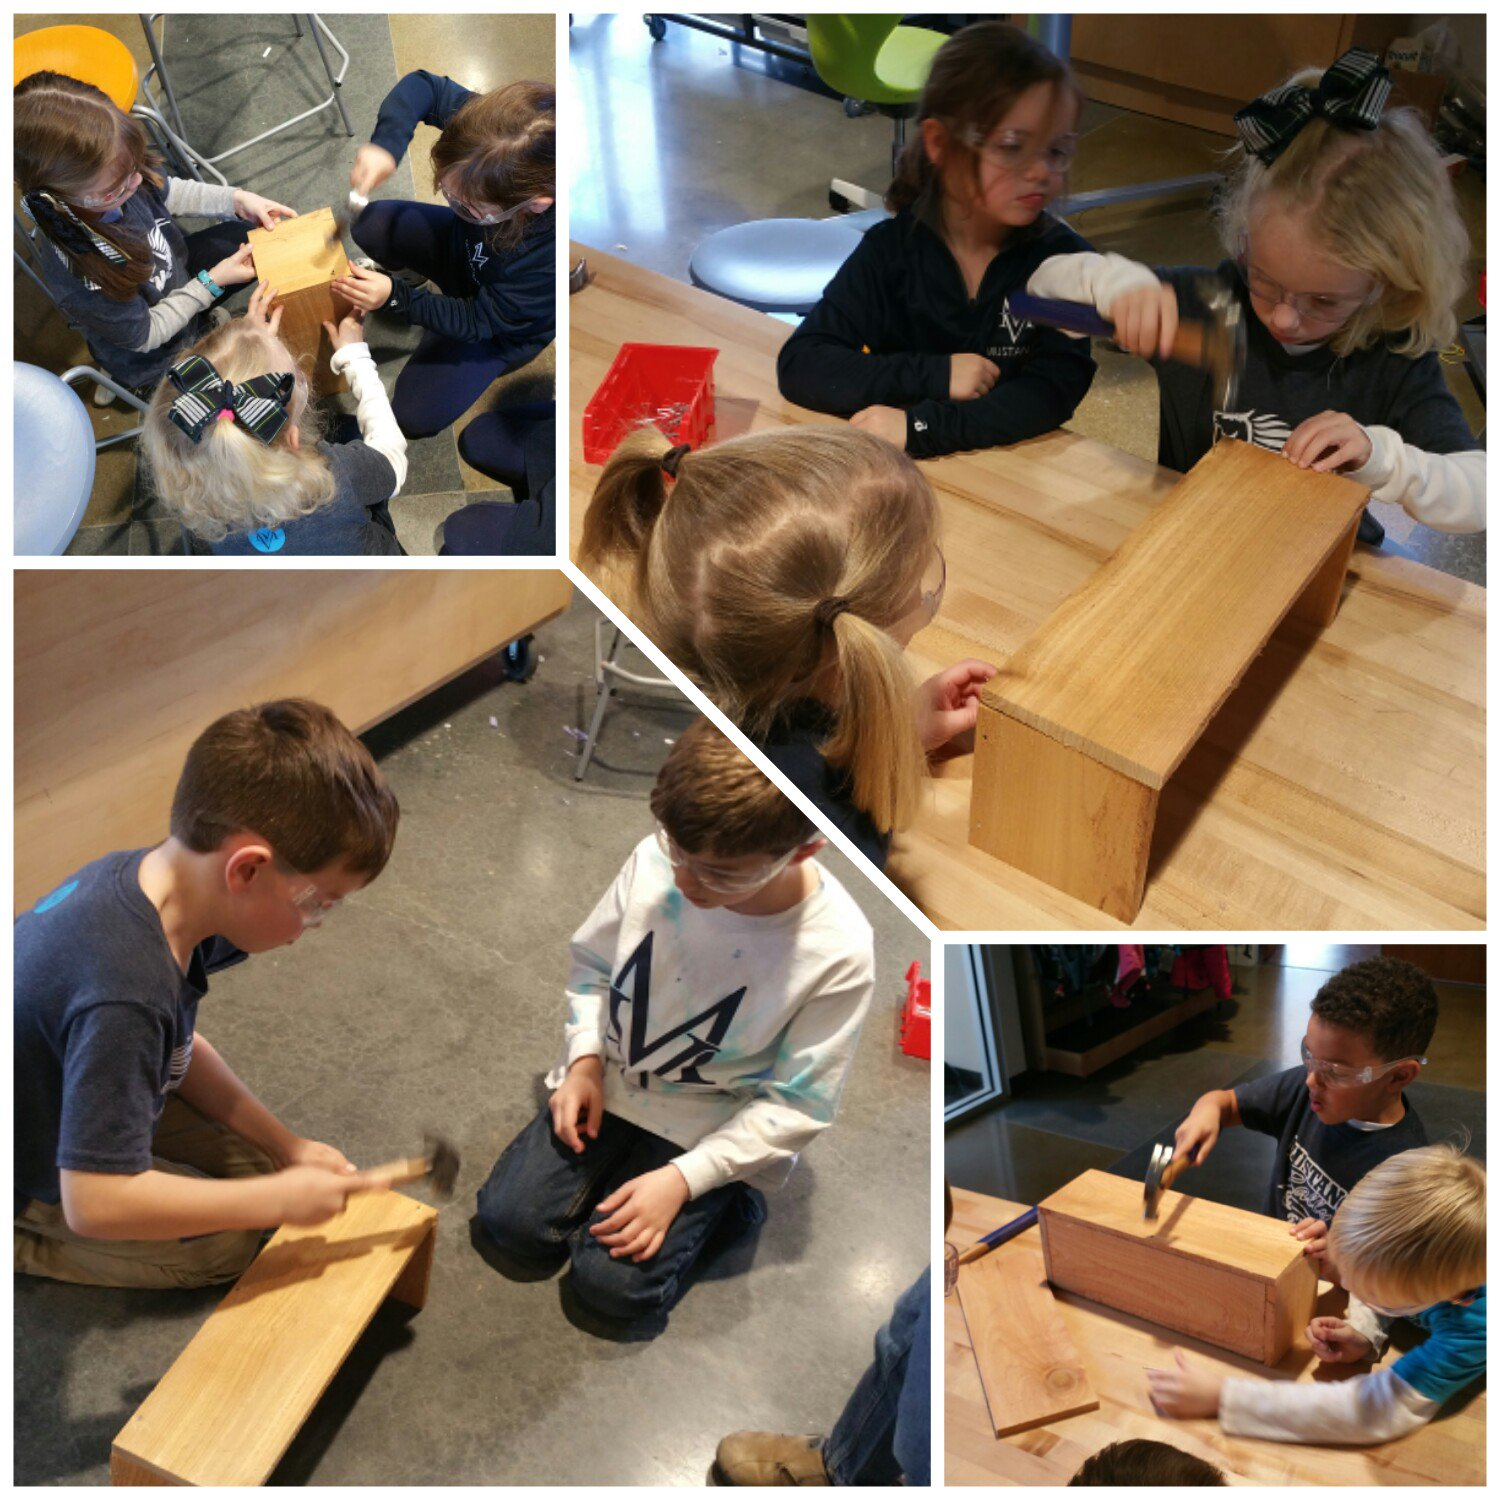 """These nails go in farther than the string art ones"" #kidquote Assembling garden boxes for @eileen_fennelly #MakerEd #MVPSchool @anawhitediy https://t.co/PgEKtK42x5"